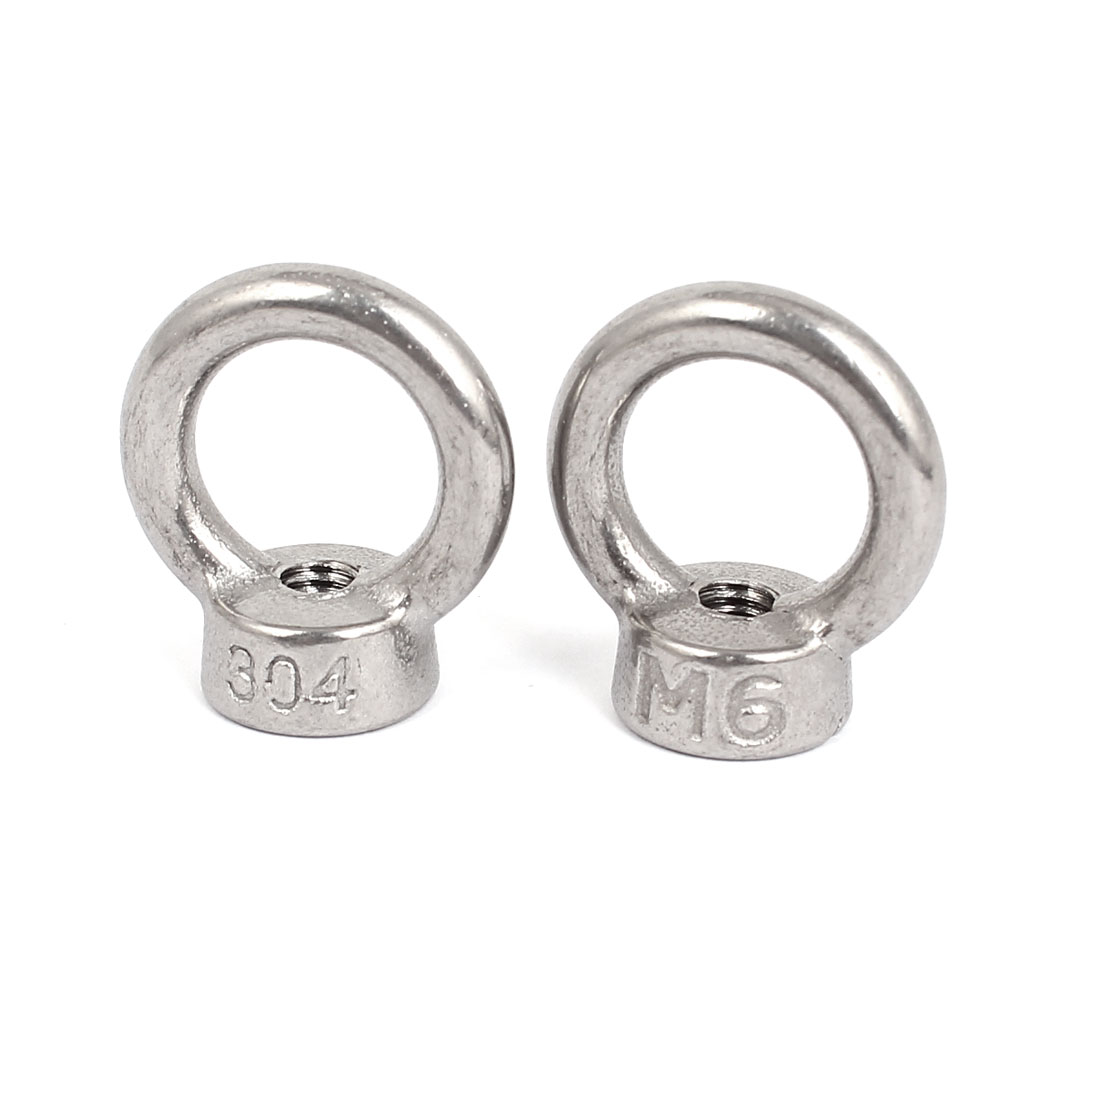 M6 Thread Dia 304 Stainless Steel Round Lifting Eye Nuts Ring Silver Tone 2Pcs